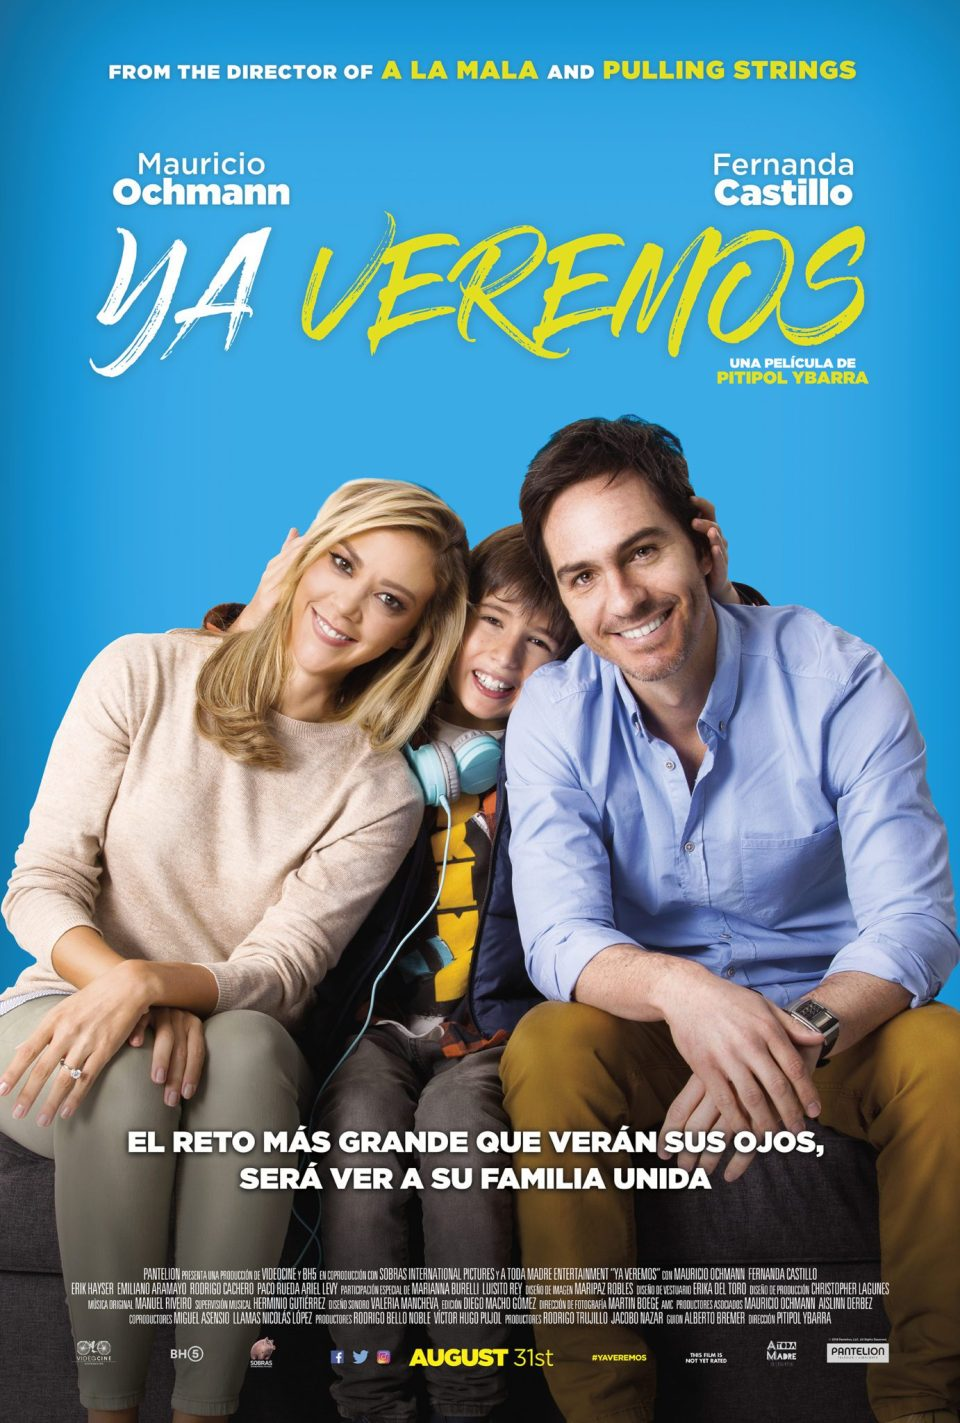 Ya Veremaos - Pre-Screening Tickets